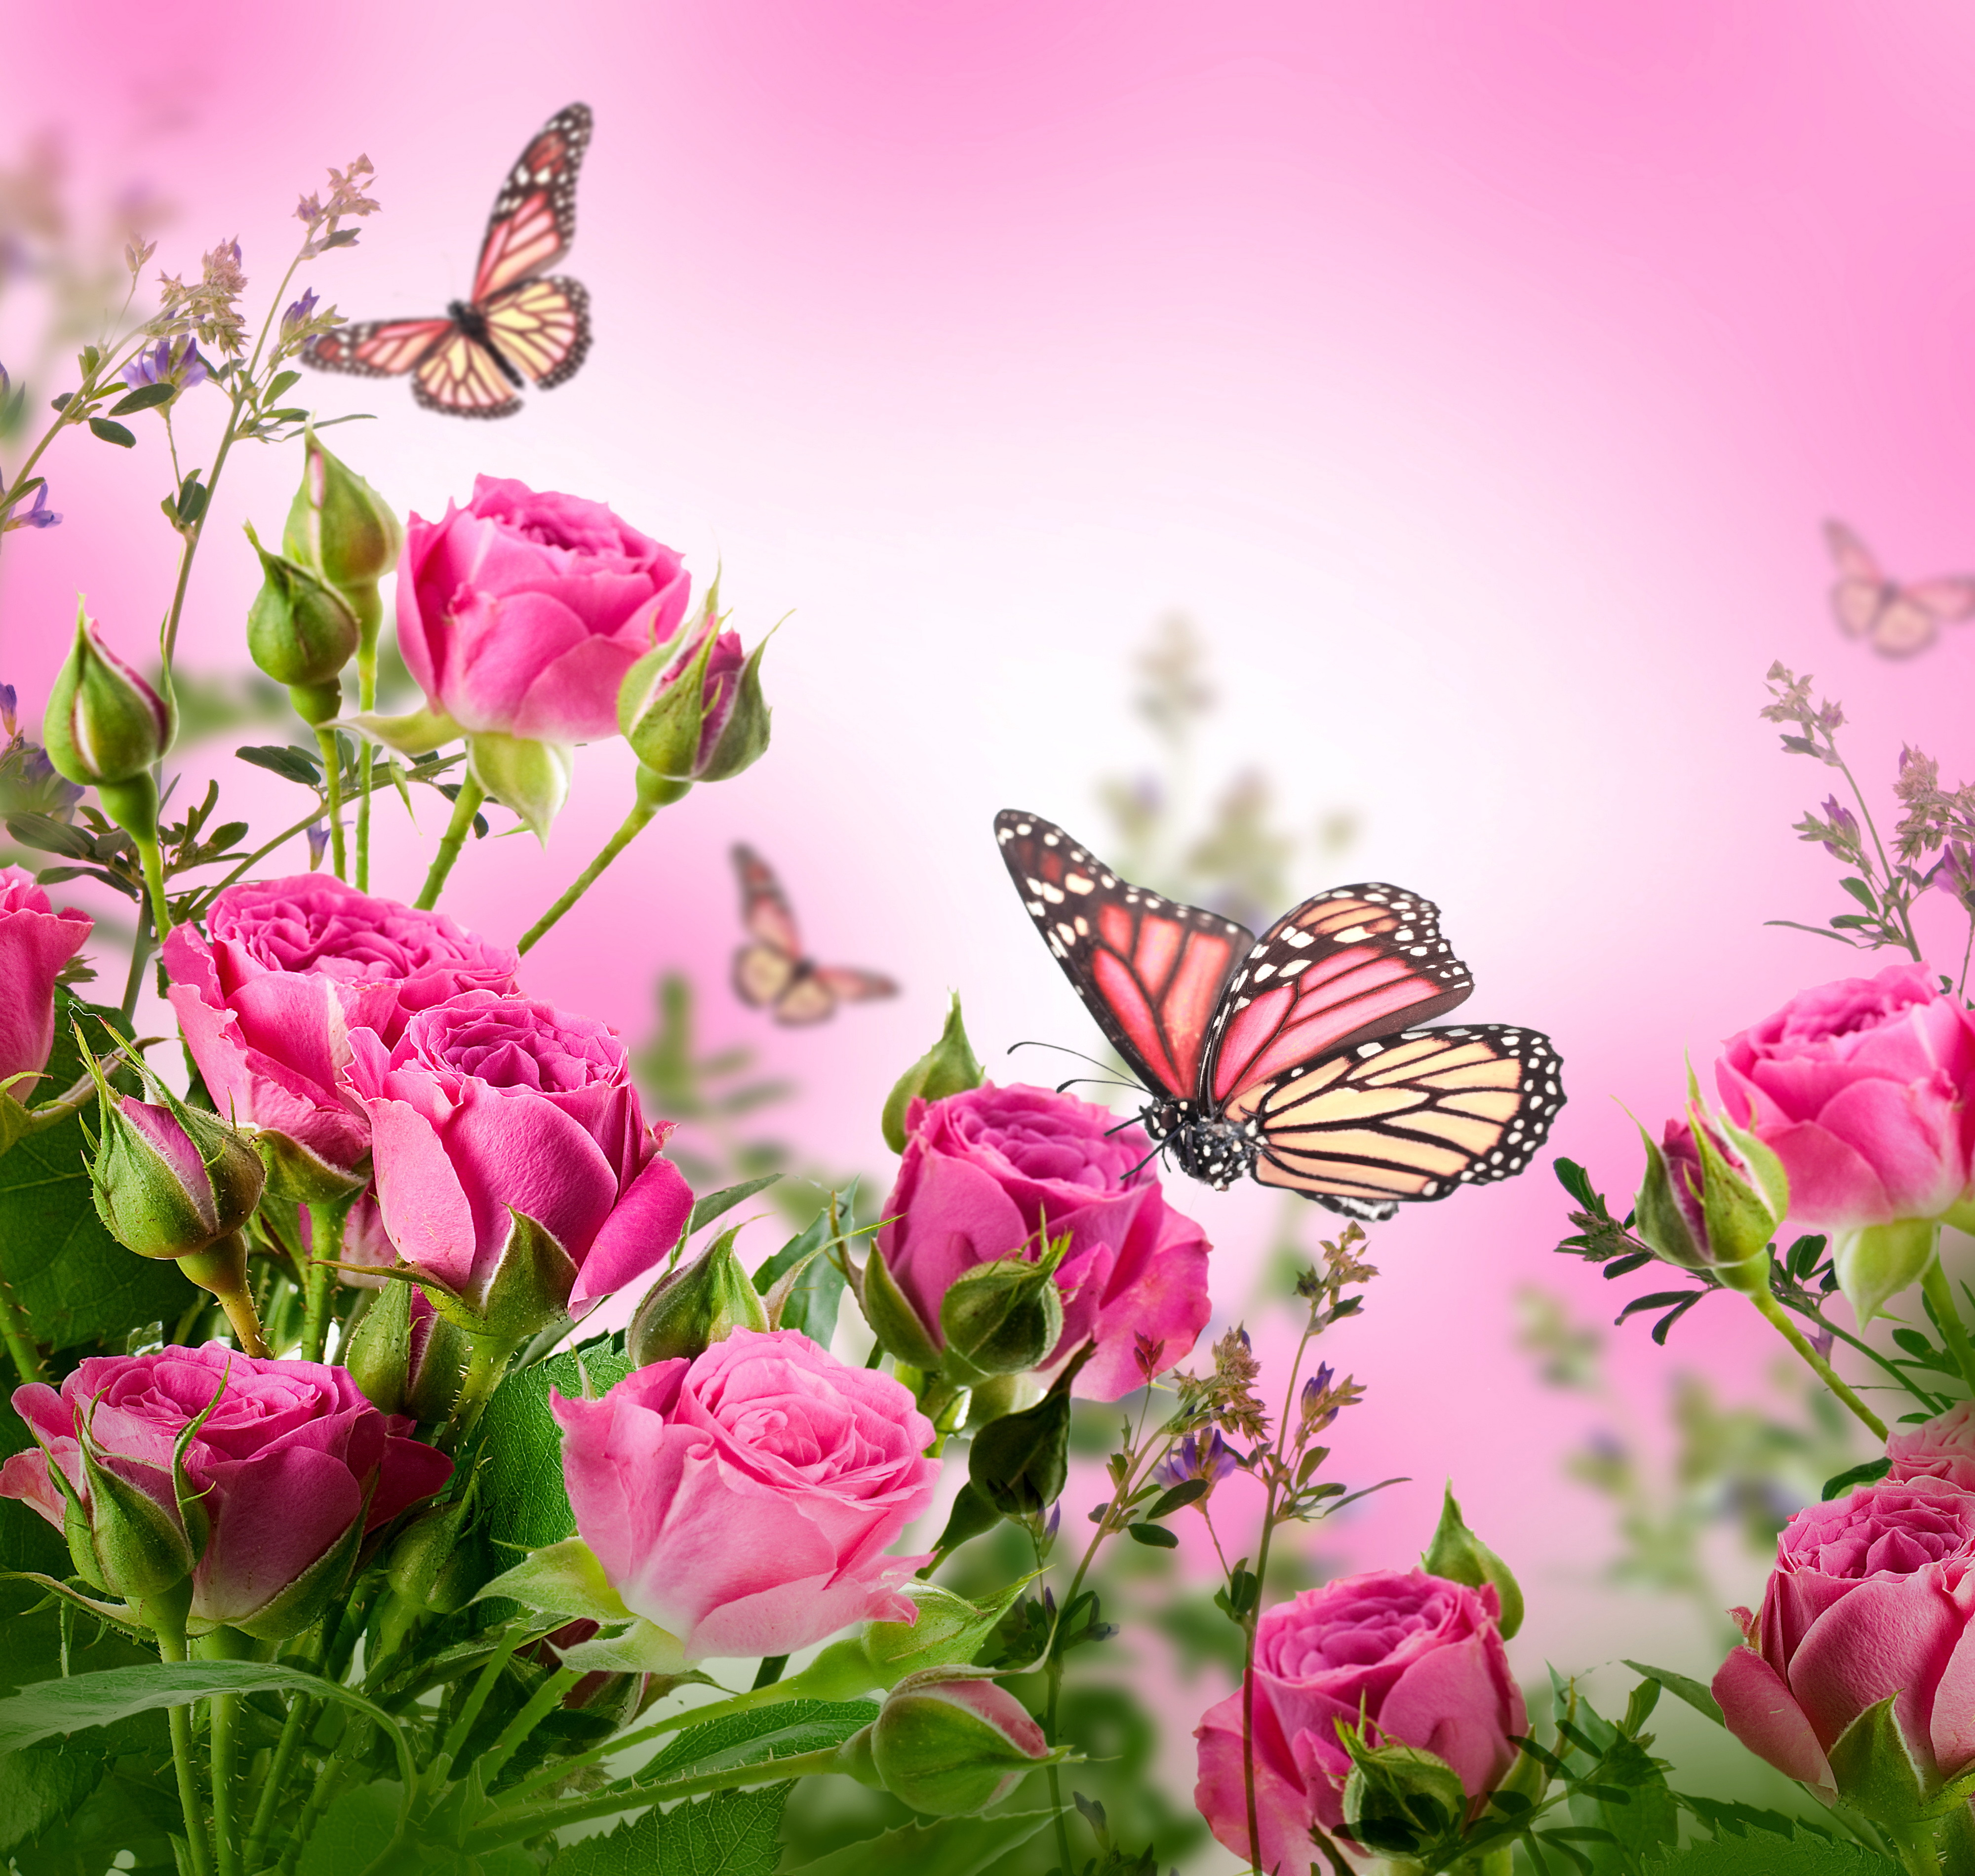 butterflies blossom beautiful flowers roses wallpapers flowers 4000x3800